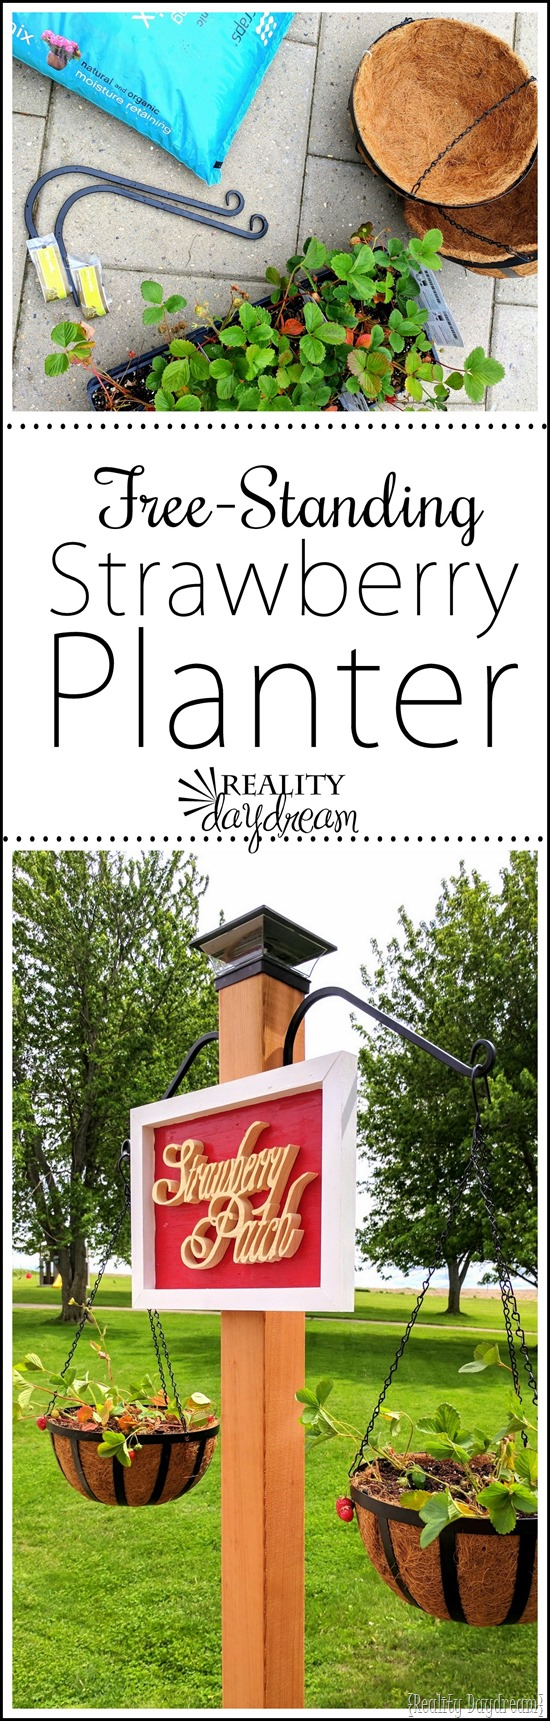 Free-standing Strawberry Garden with Hanging Planters - perfect for small spaces or renters! {Reality Daydream}